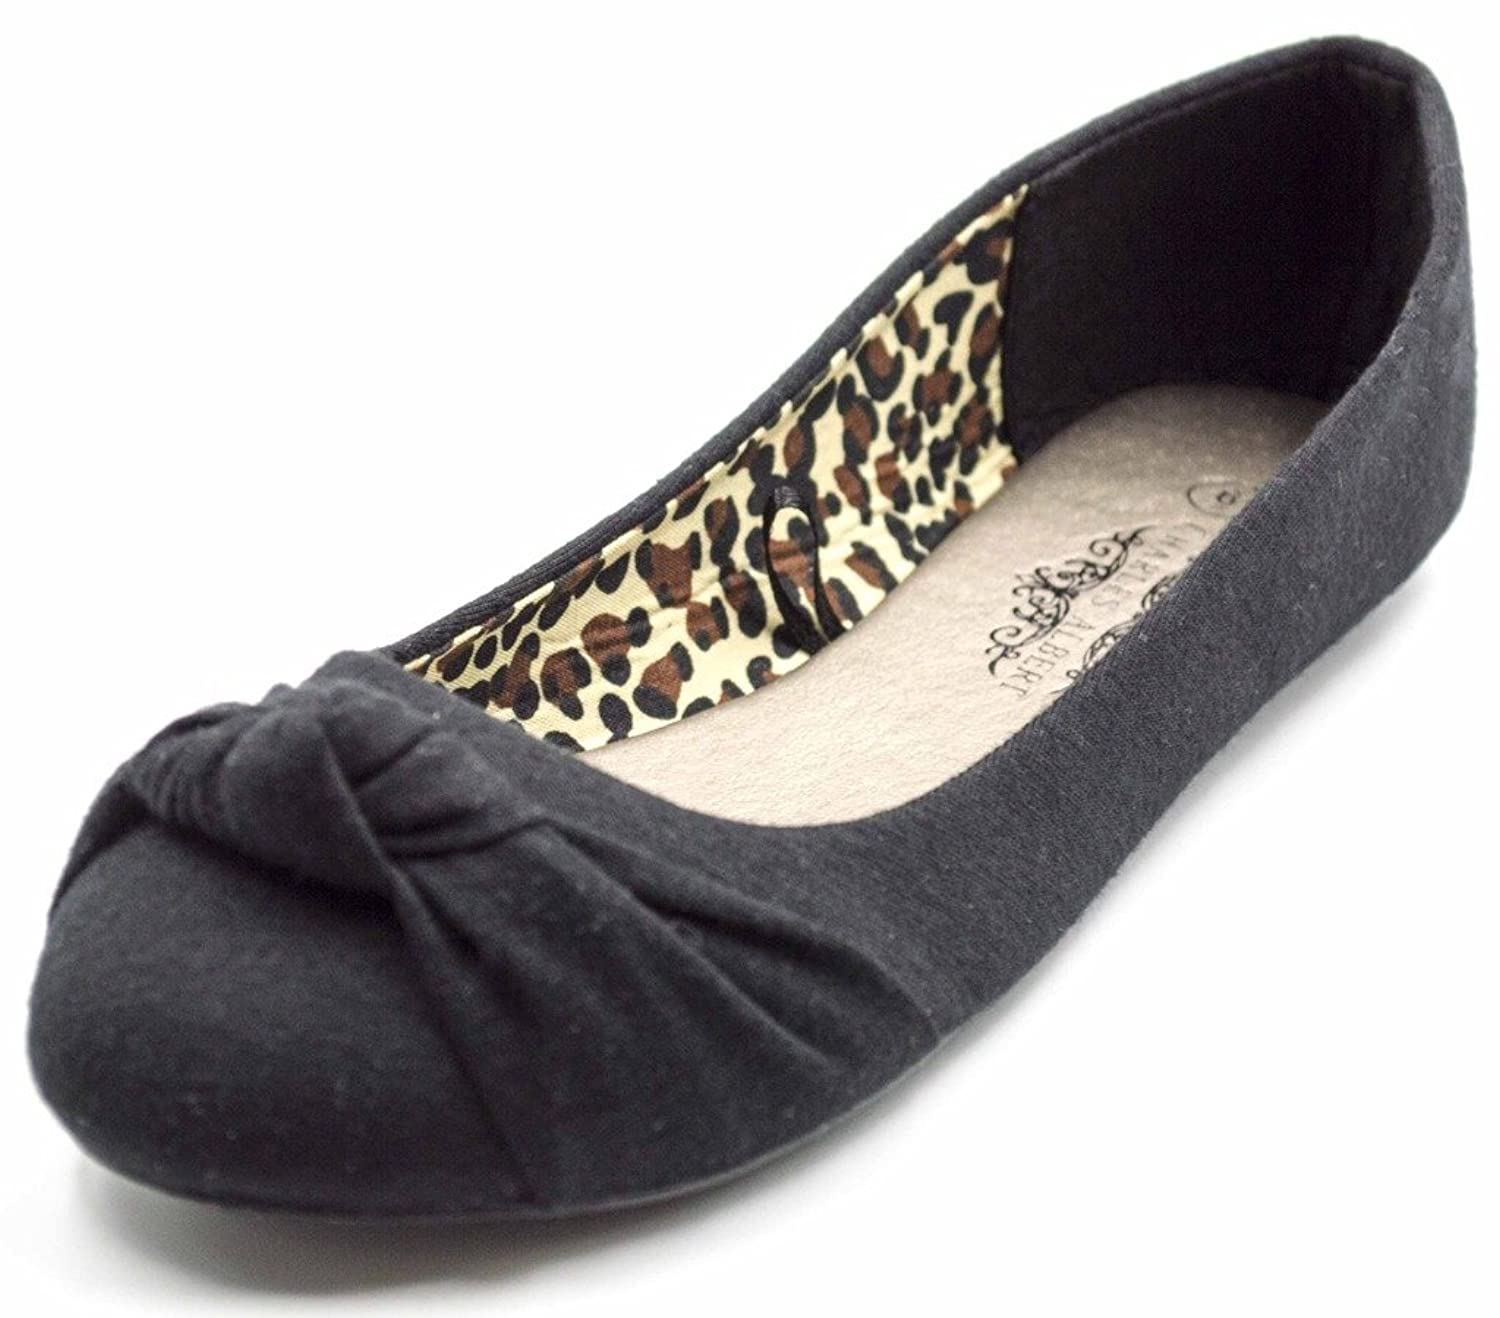 Charles Albert Women's Knotted Front Canvas Round Toe Ballet Flats - Women's Flats Amazon.com